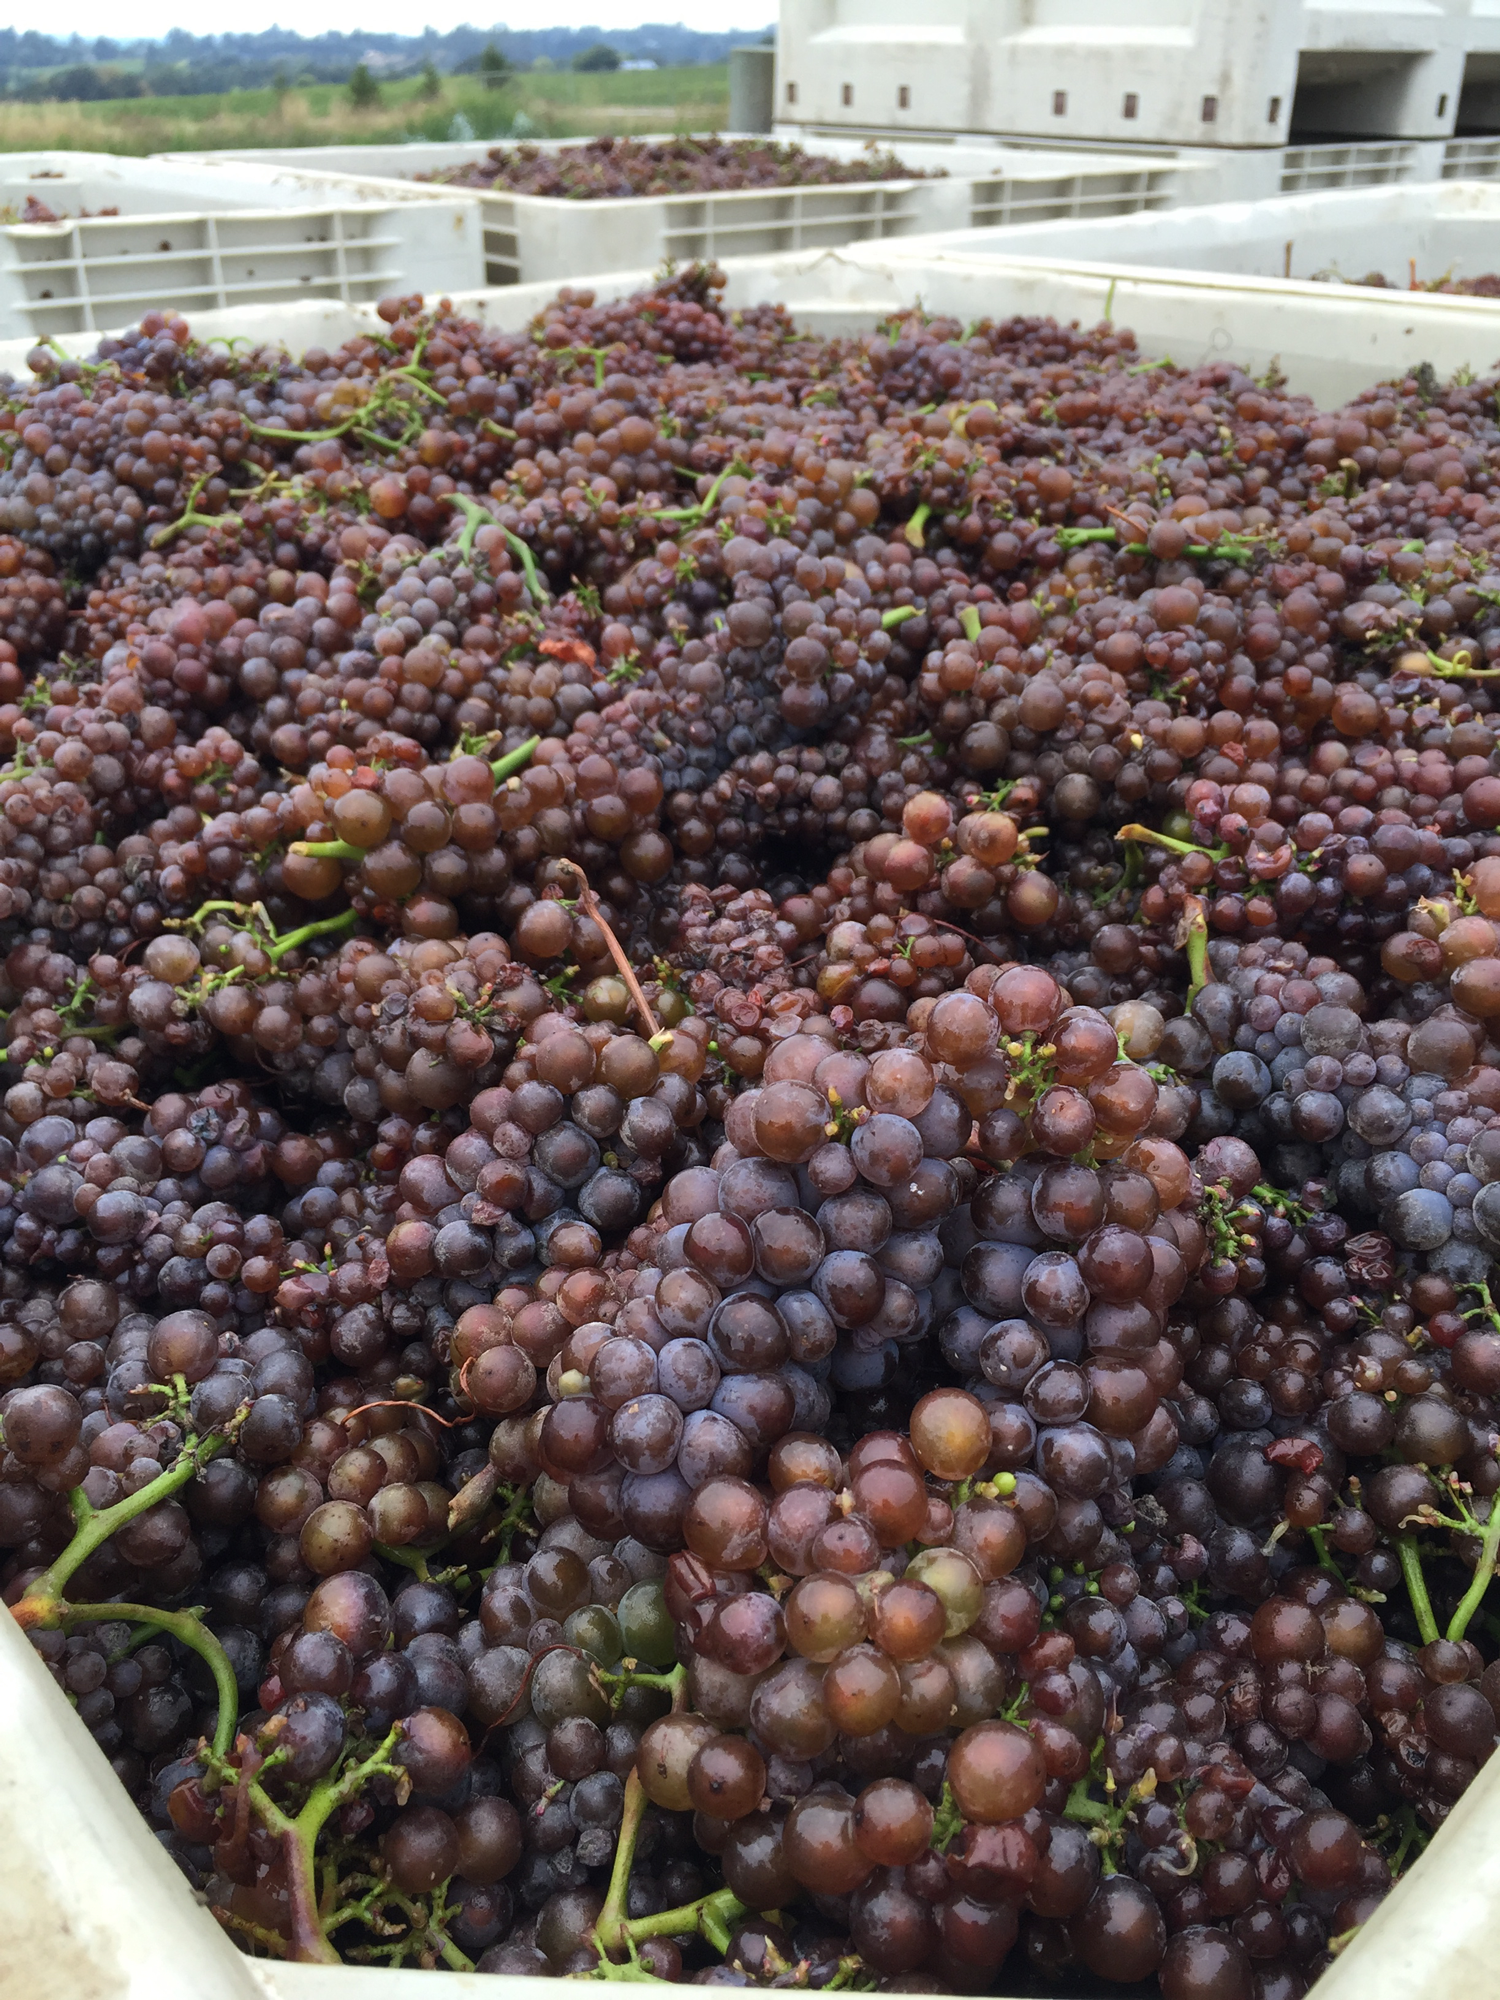 Freshly_harvested_pinot_gris_grapes_at_Mary's_vineyard.png